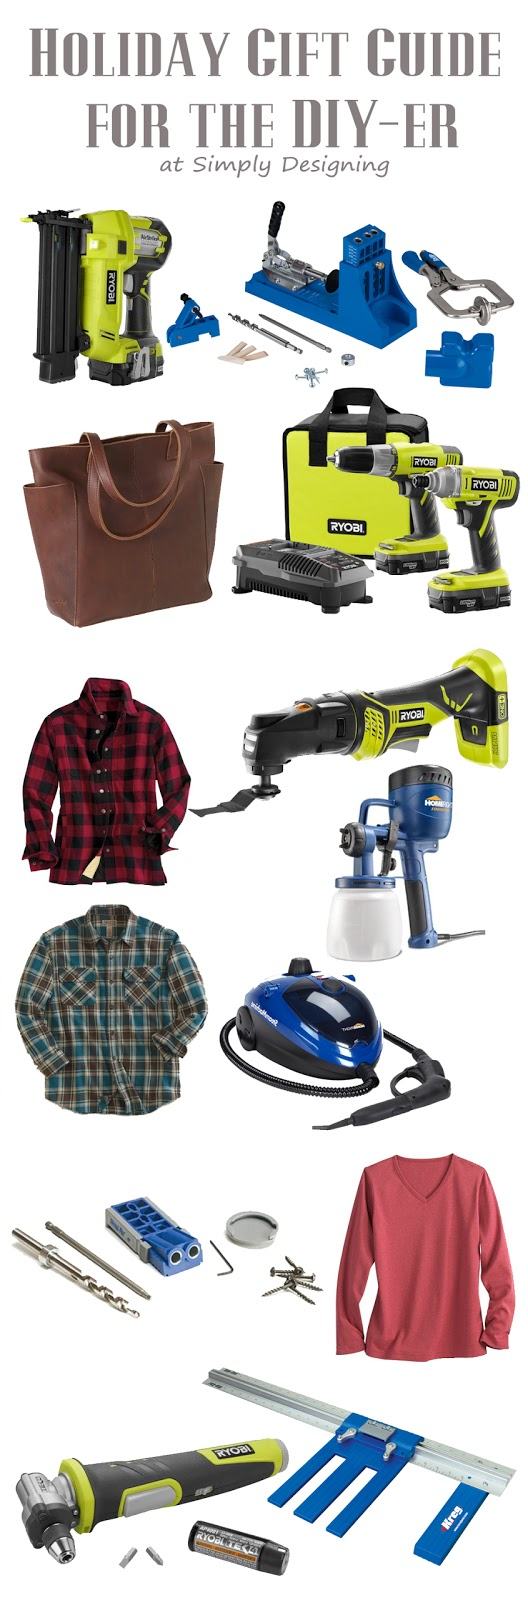 Holiday Gift Guide for the DIY-er | #giftguide #diy #christmas #holiday